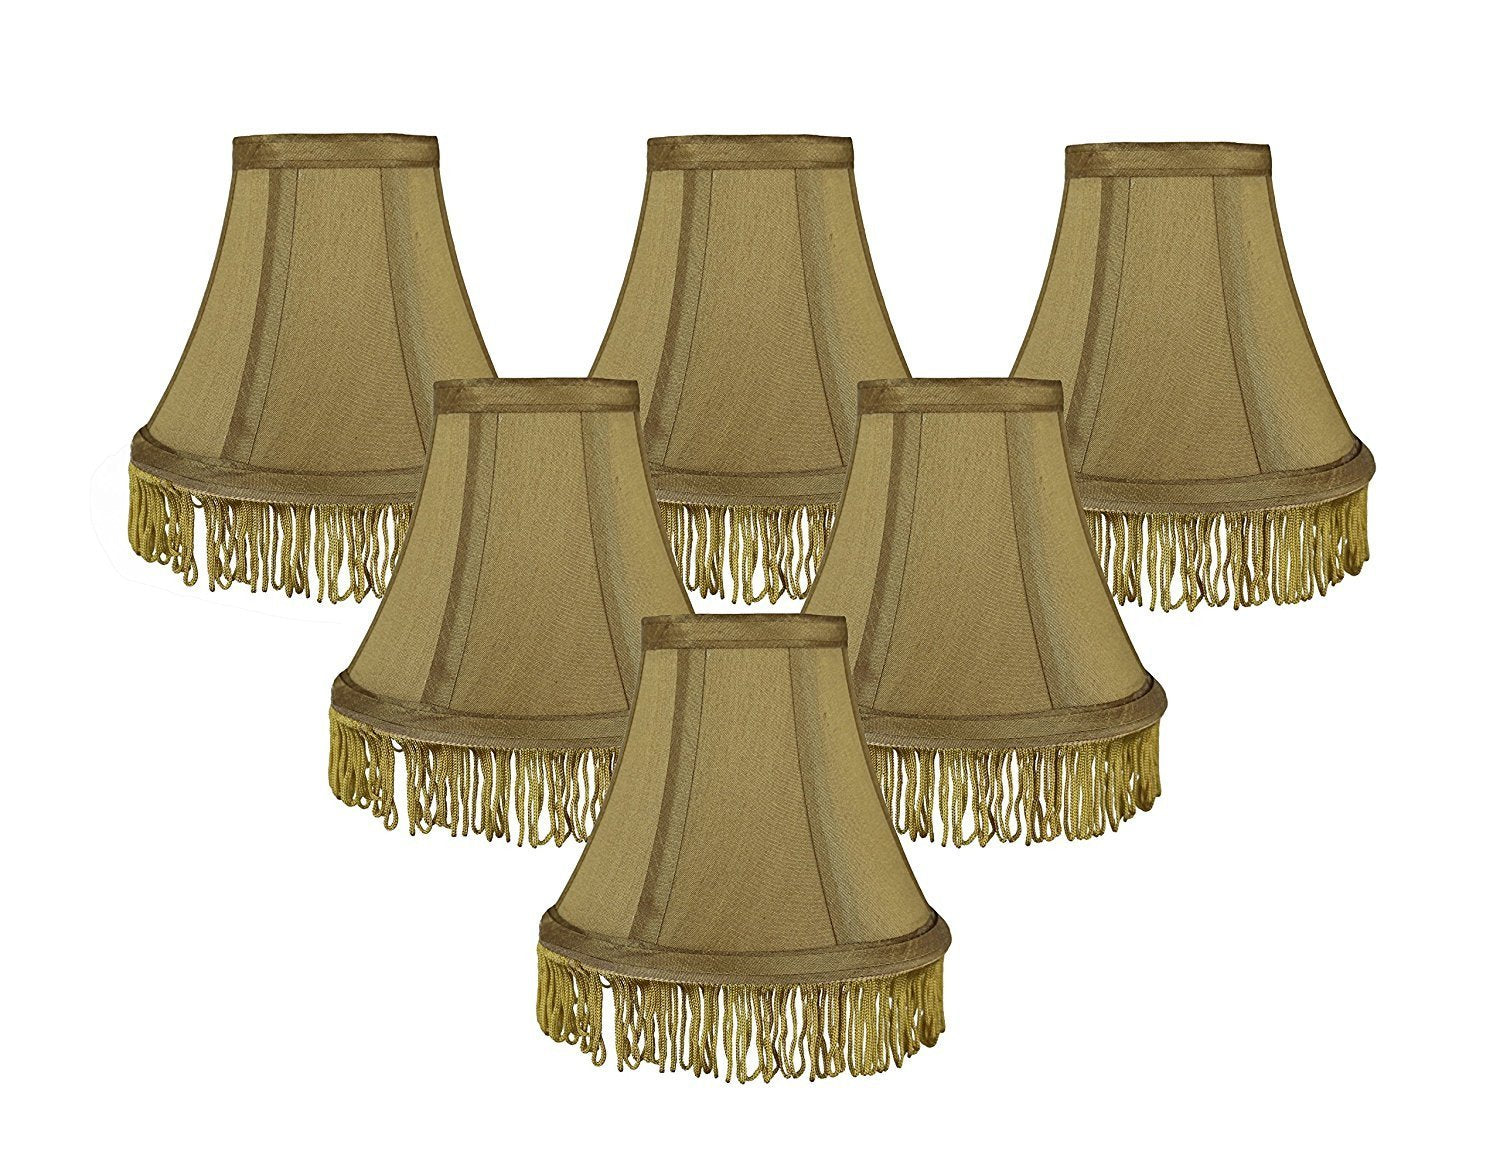 Silk 6 Inch Bell With Fringe Chandelier Lamp Shade   5 Colors